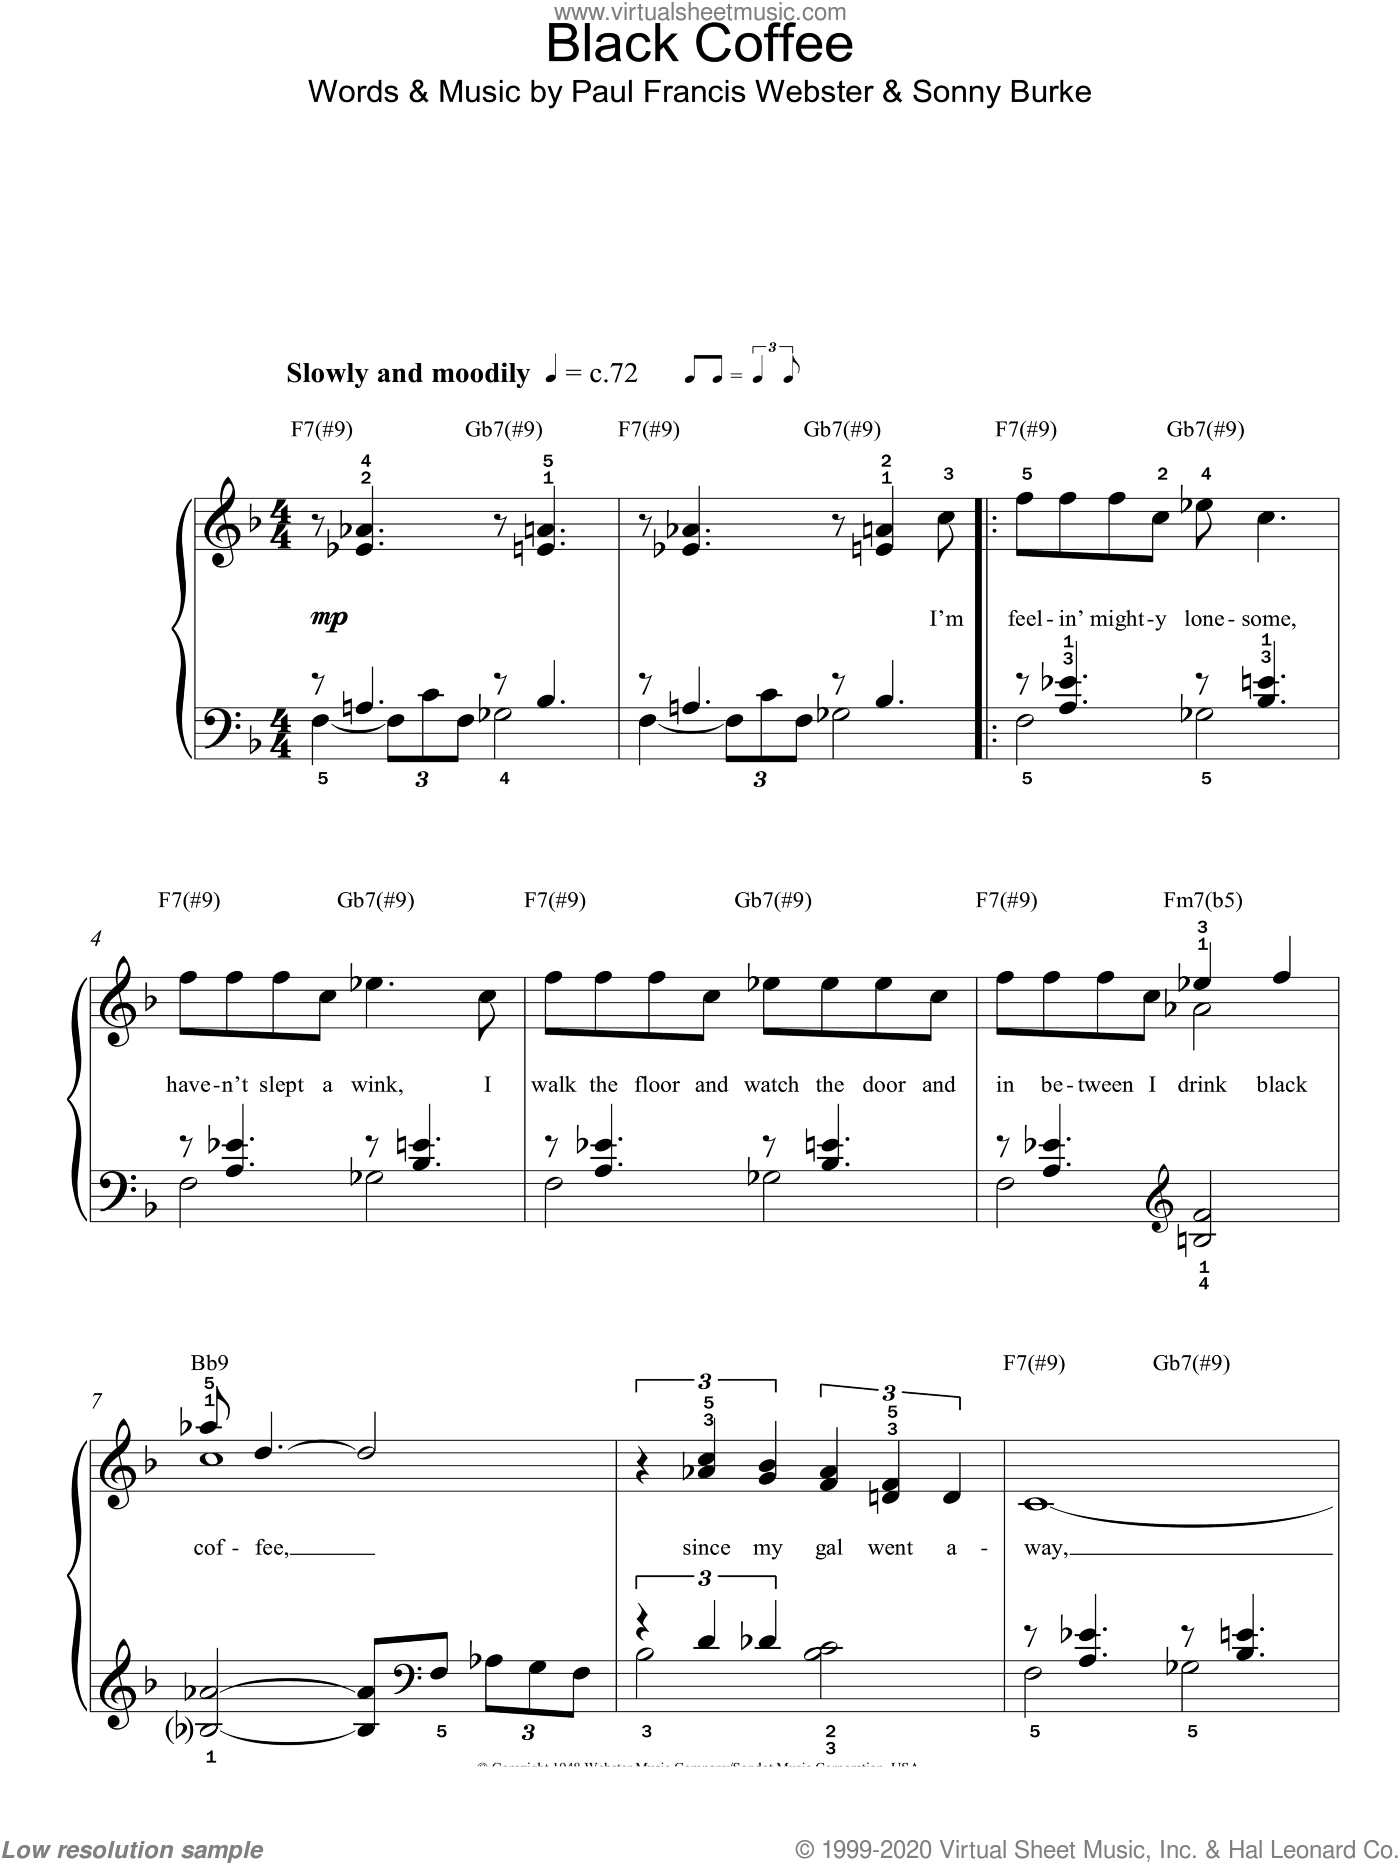 Black Coffee sheet music for piano solo (chords) by Paul Francis Webster